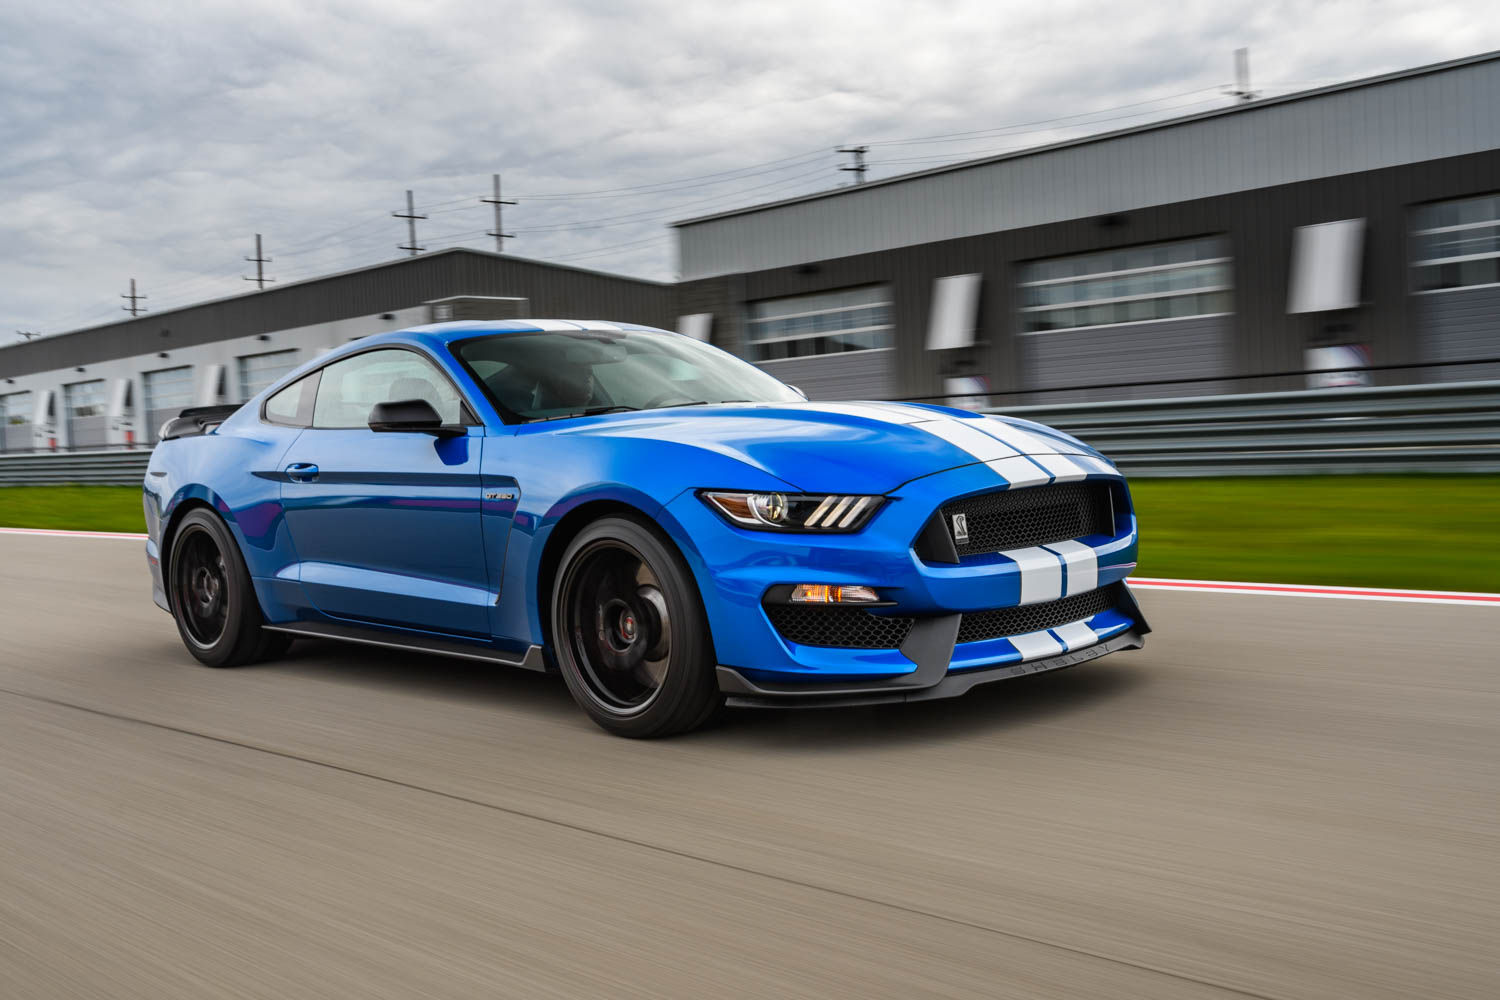 2019 Ford Mustang Shelby GT350 on the track